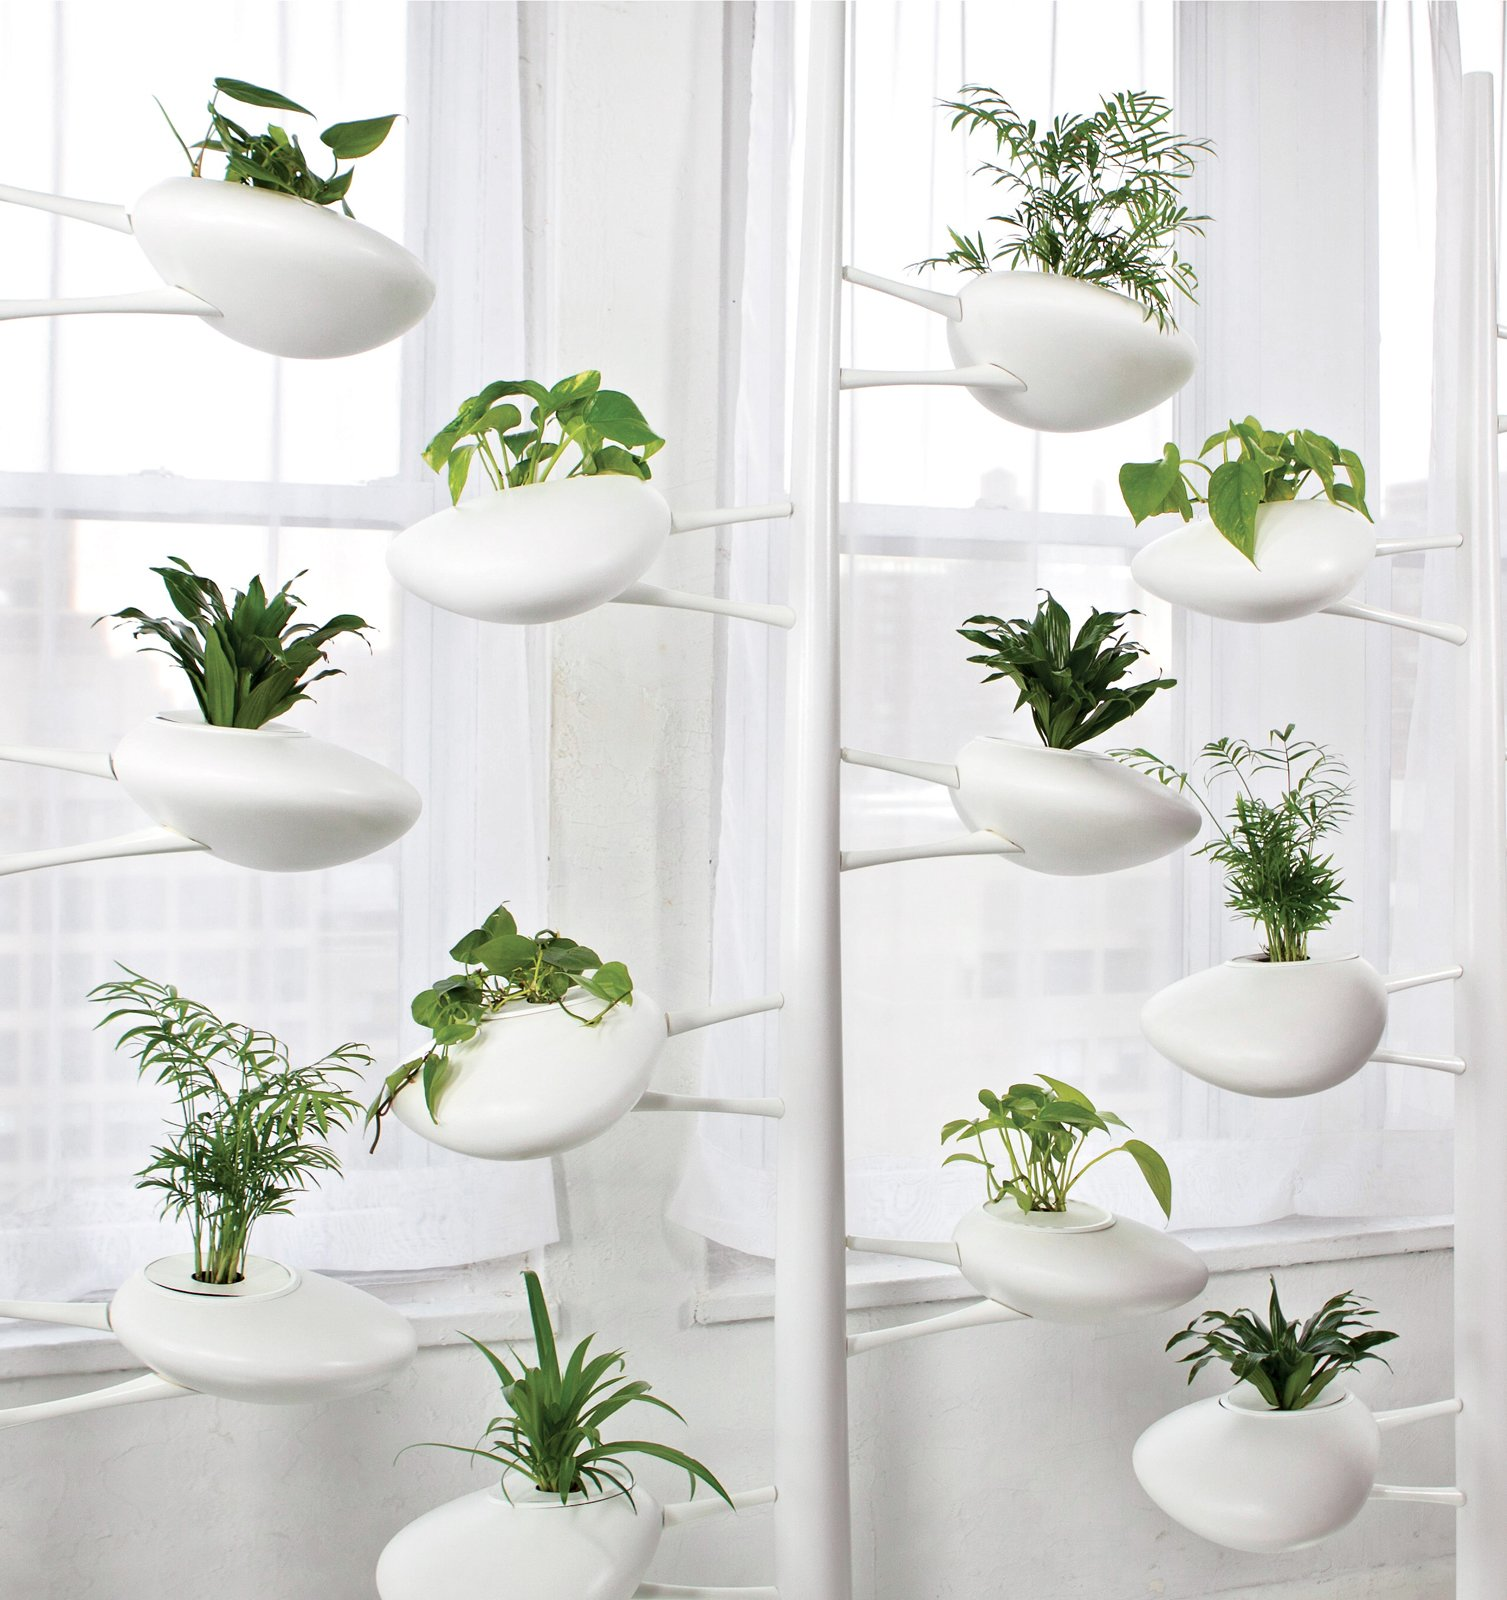 Danielle Trofe DesignThe Live Screen is an indoor planter system that uses self-sustaining, hydroponic technology.  20+ Ways to Design with Planters by Allie Weiss from 6 Noteworthy Designs from Salone Satellite 2013